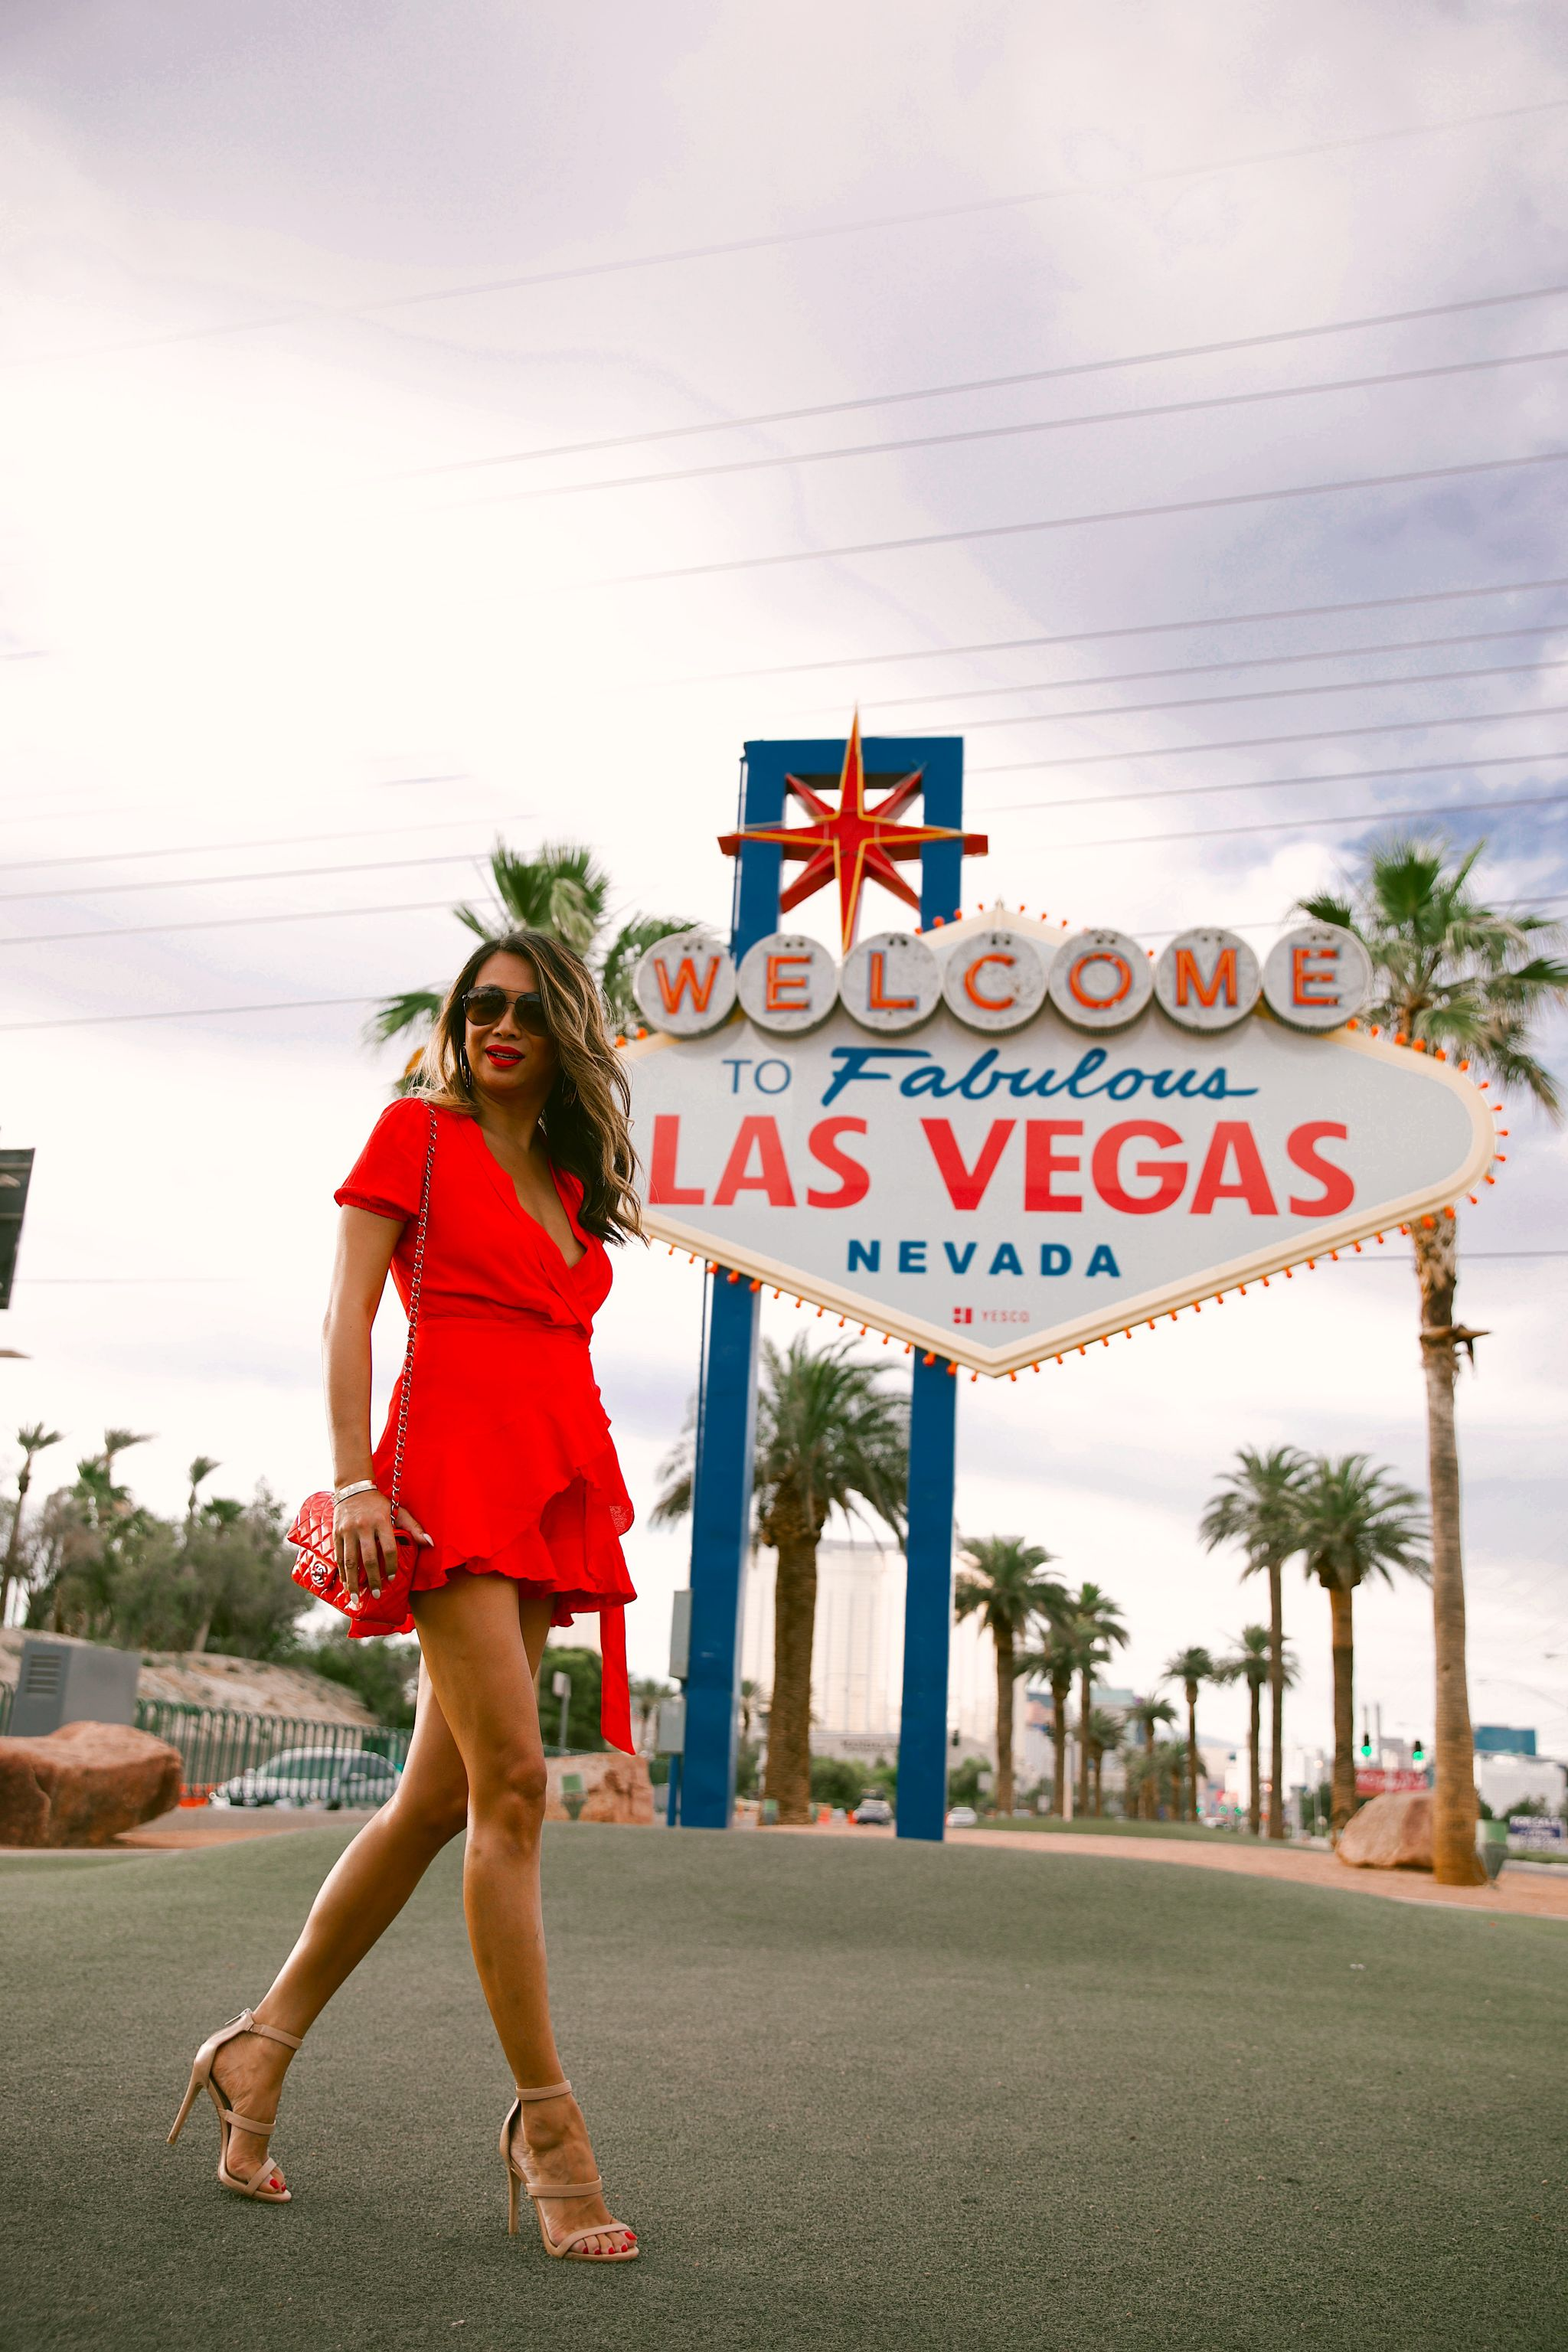 Jennifer Worman, Red Soles and Red Wine, chicago blogger, travel blogger, fashion blogger, outfit ideas, June Recap, monthly recap, June 2019, fashion and lifestyle blog, travel blog, Akira red wrap dress, las Vegas travel guide, Las Vegas trip, Welcome Las Vegas Sign